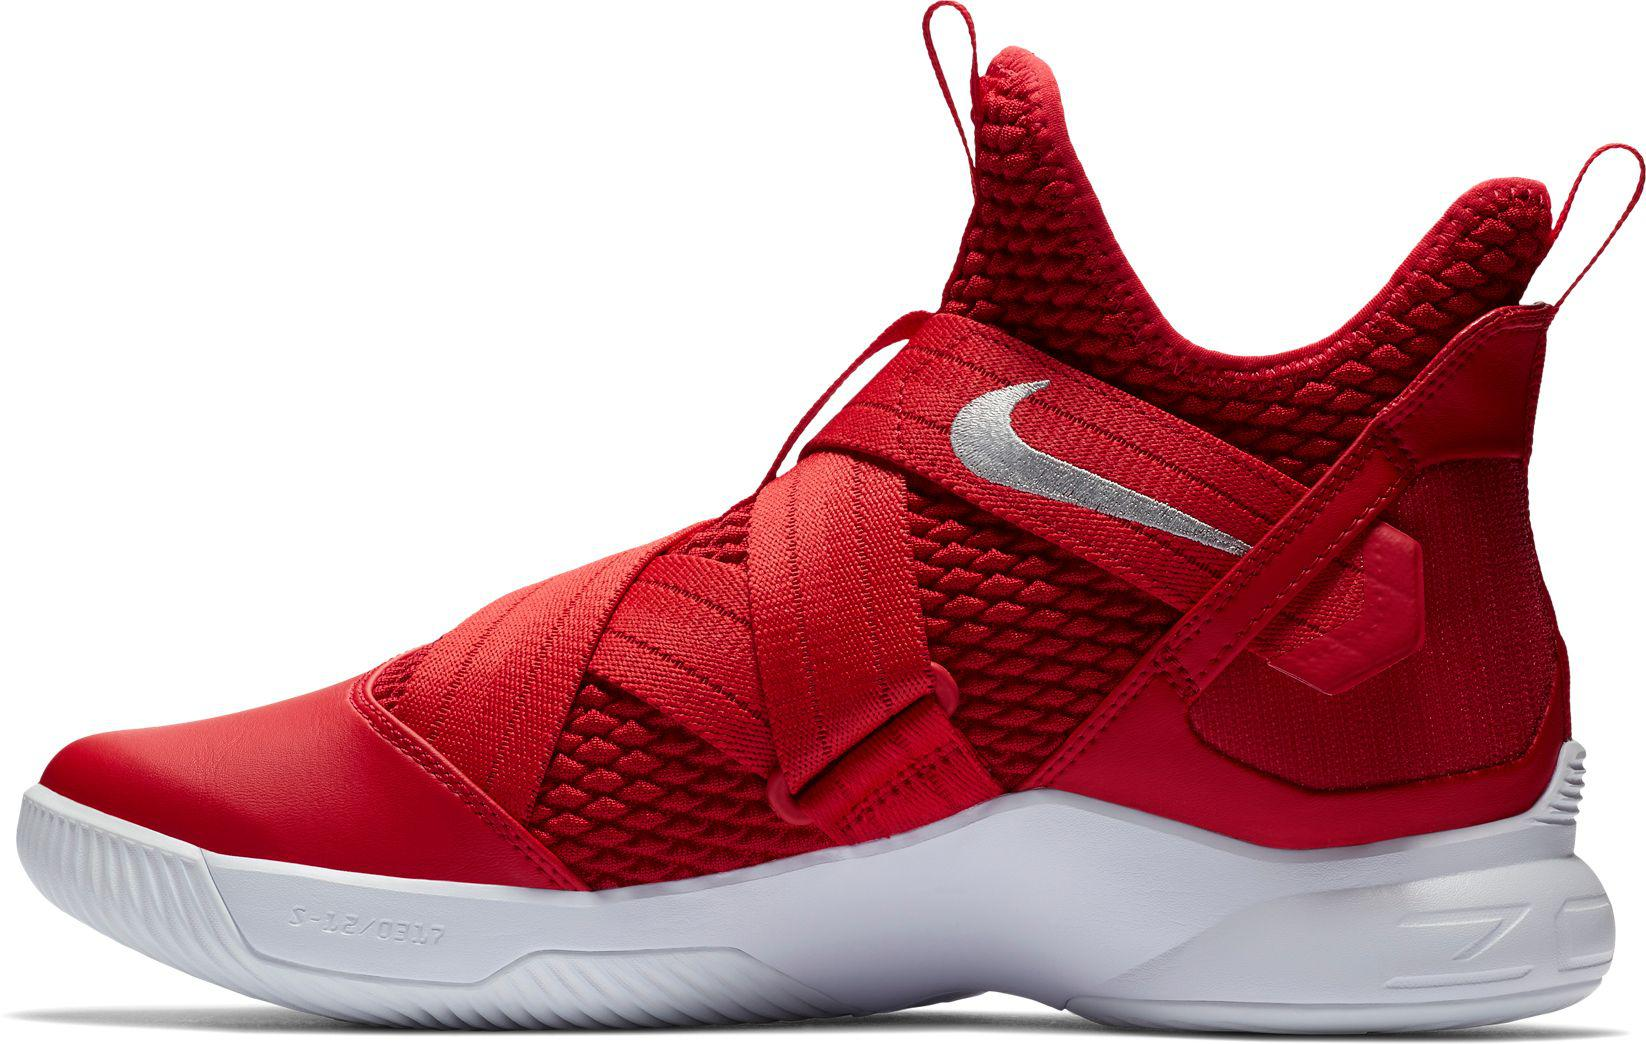 d7f4fb7ef18 Lyst - Nike Zoom Lebron Soldier Xii Tb Basketball Shoes in Red for Men